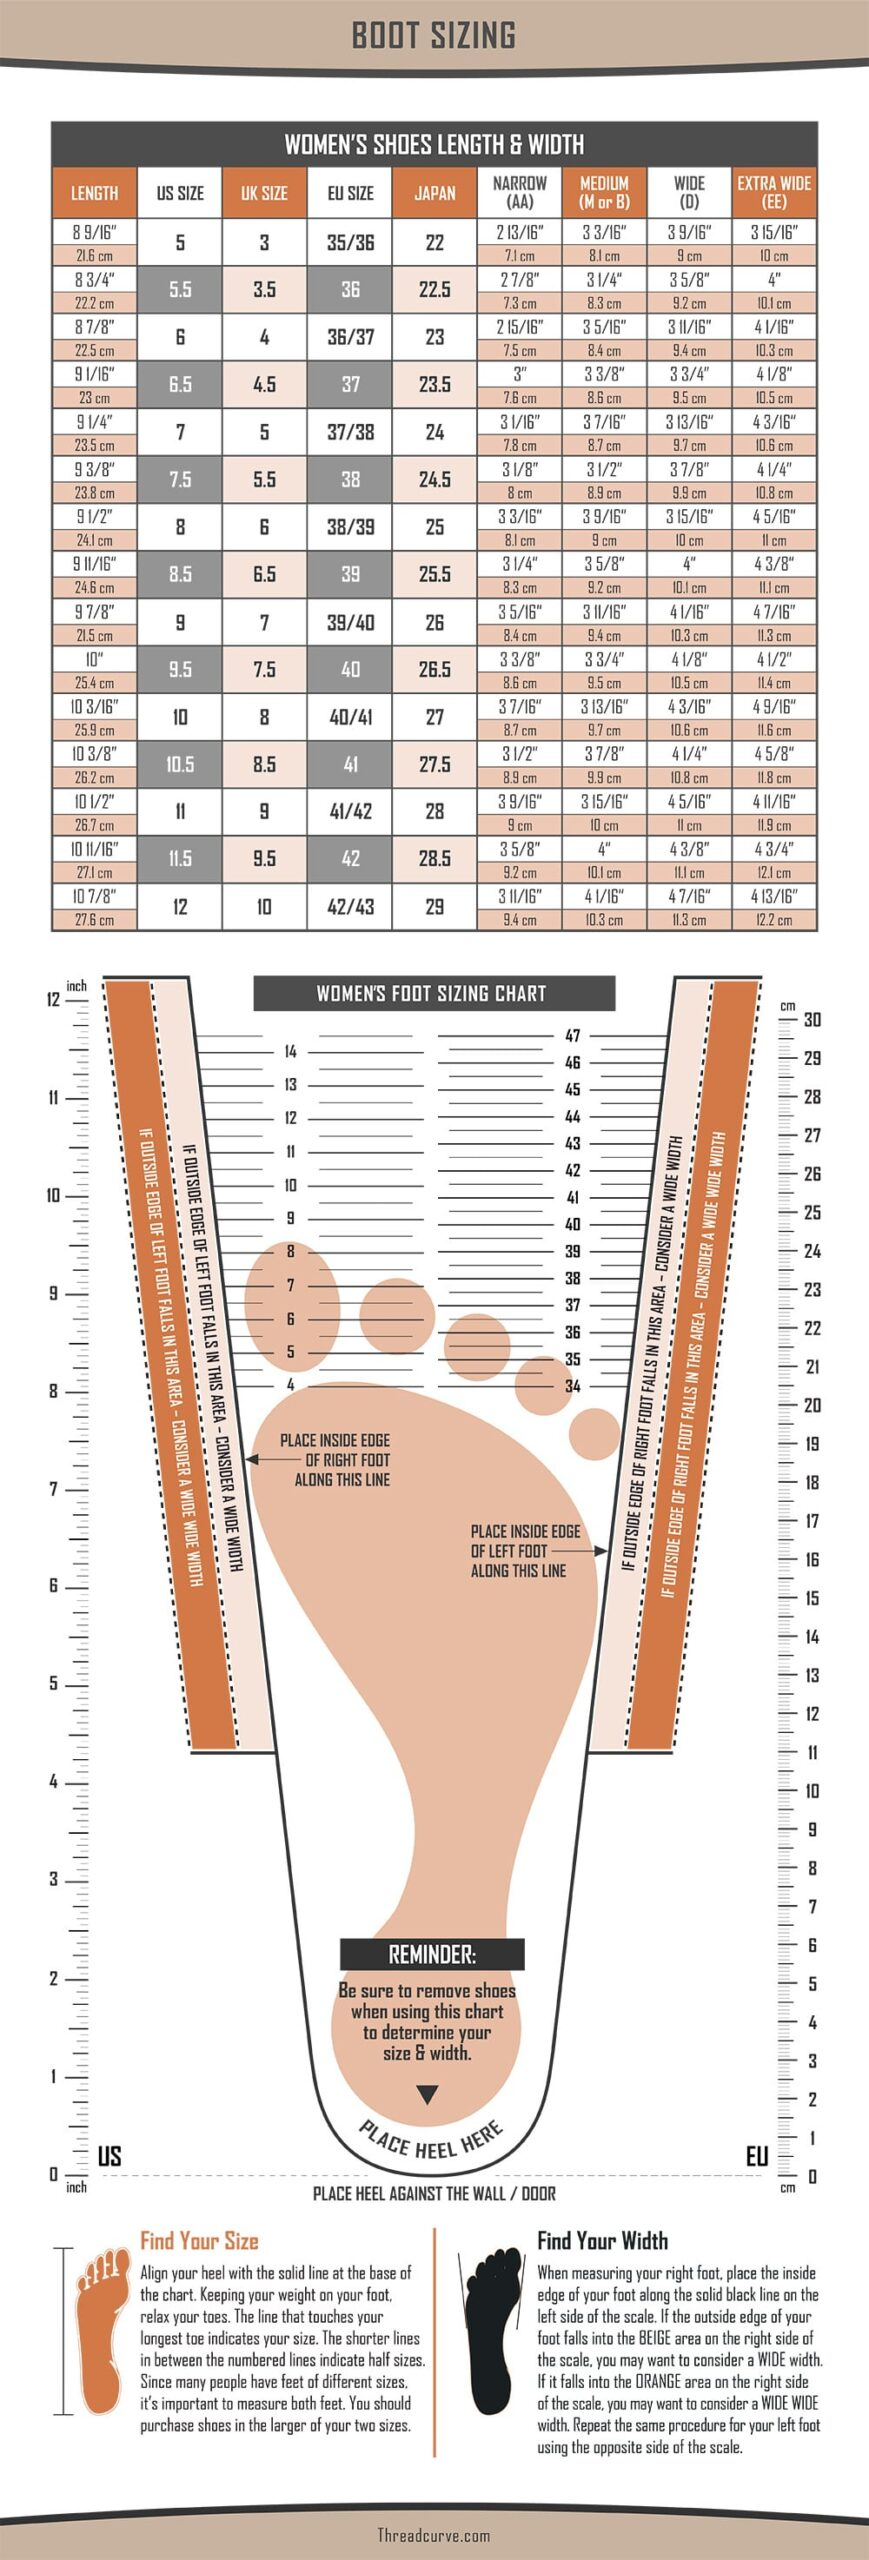 Women's boot size chart with measuring guide